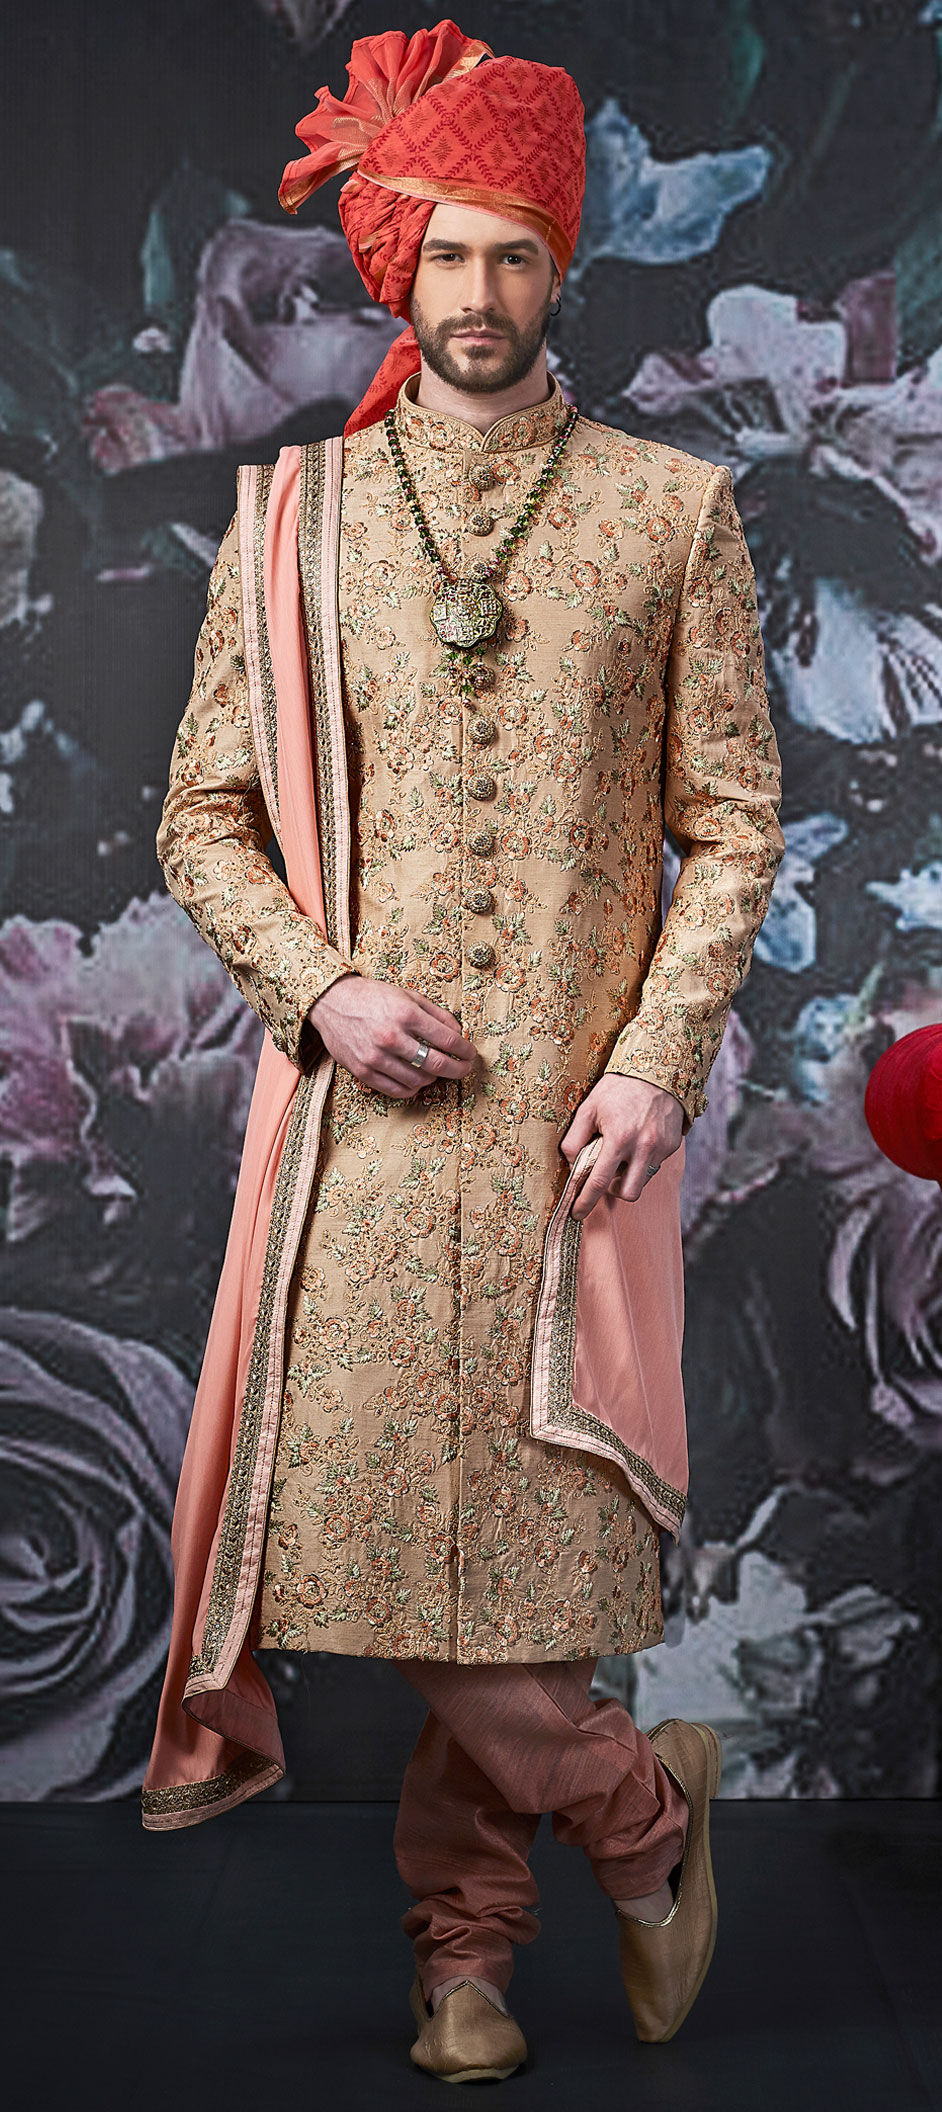 Unique Men's Wedding Sherwani Designs to Uplift the Groom's Style Quotient